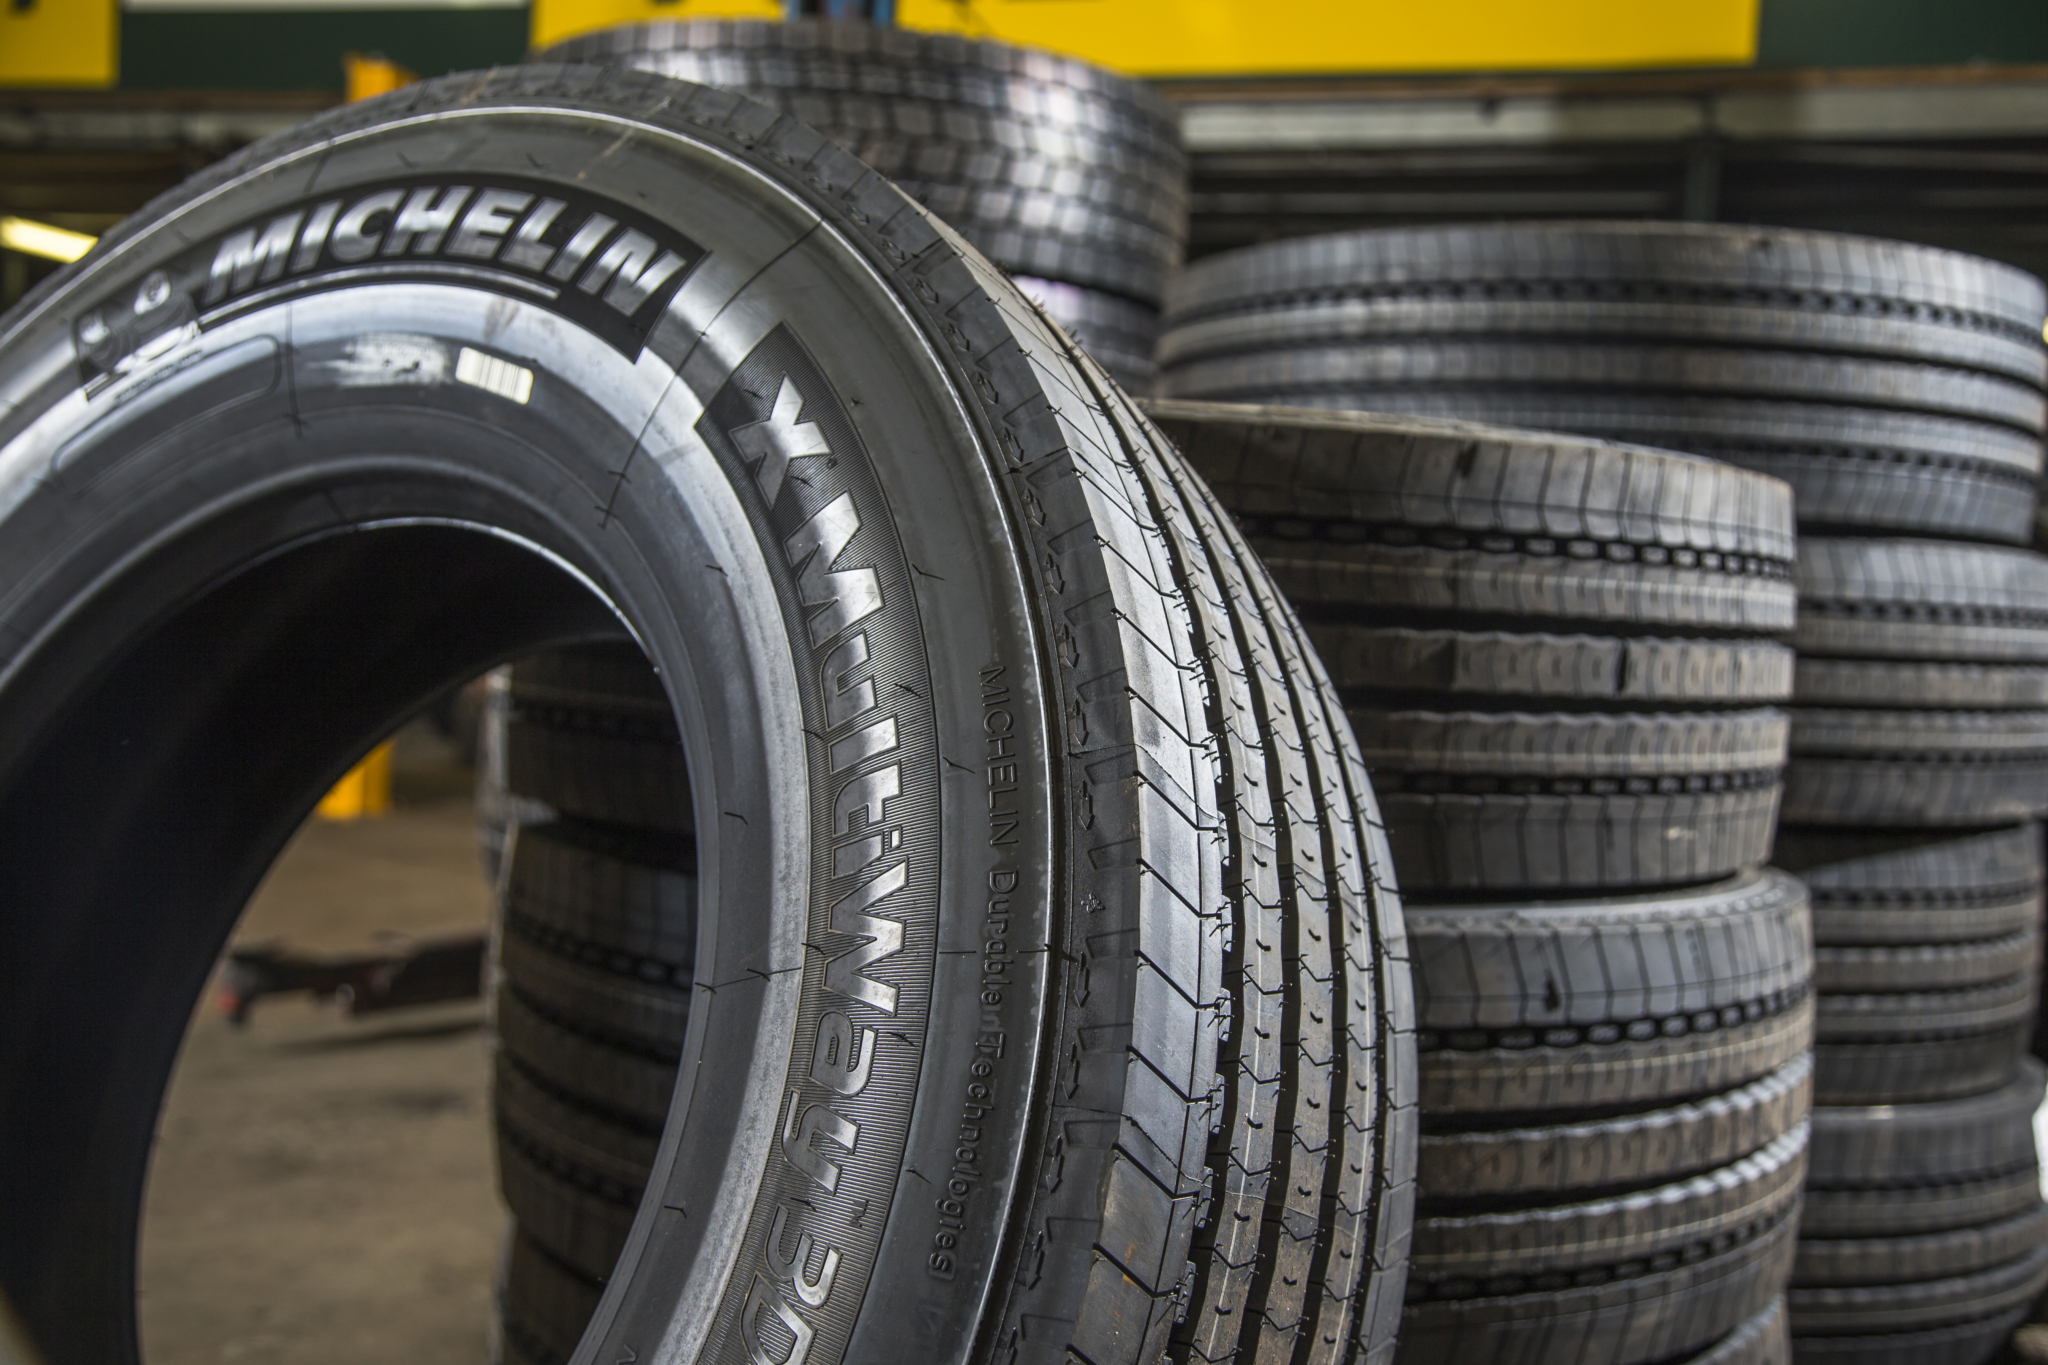 Michelin Stoke up-and-running, looking forward to 'steady market growth'